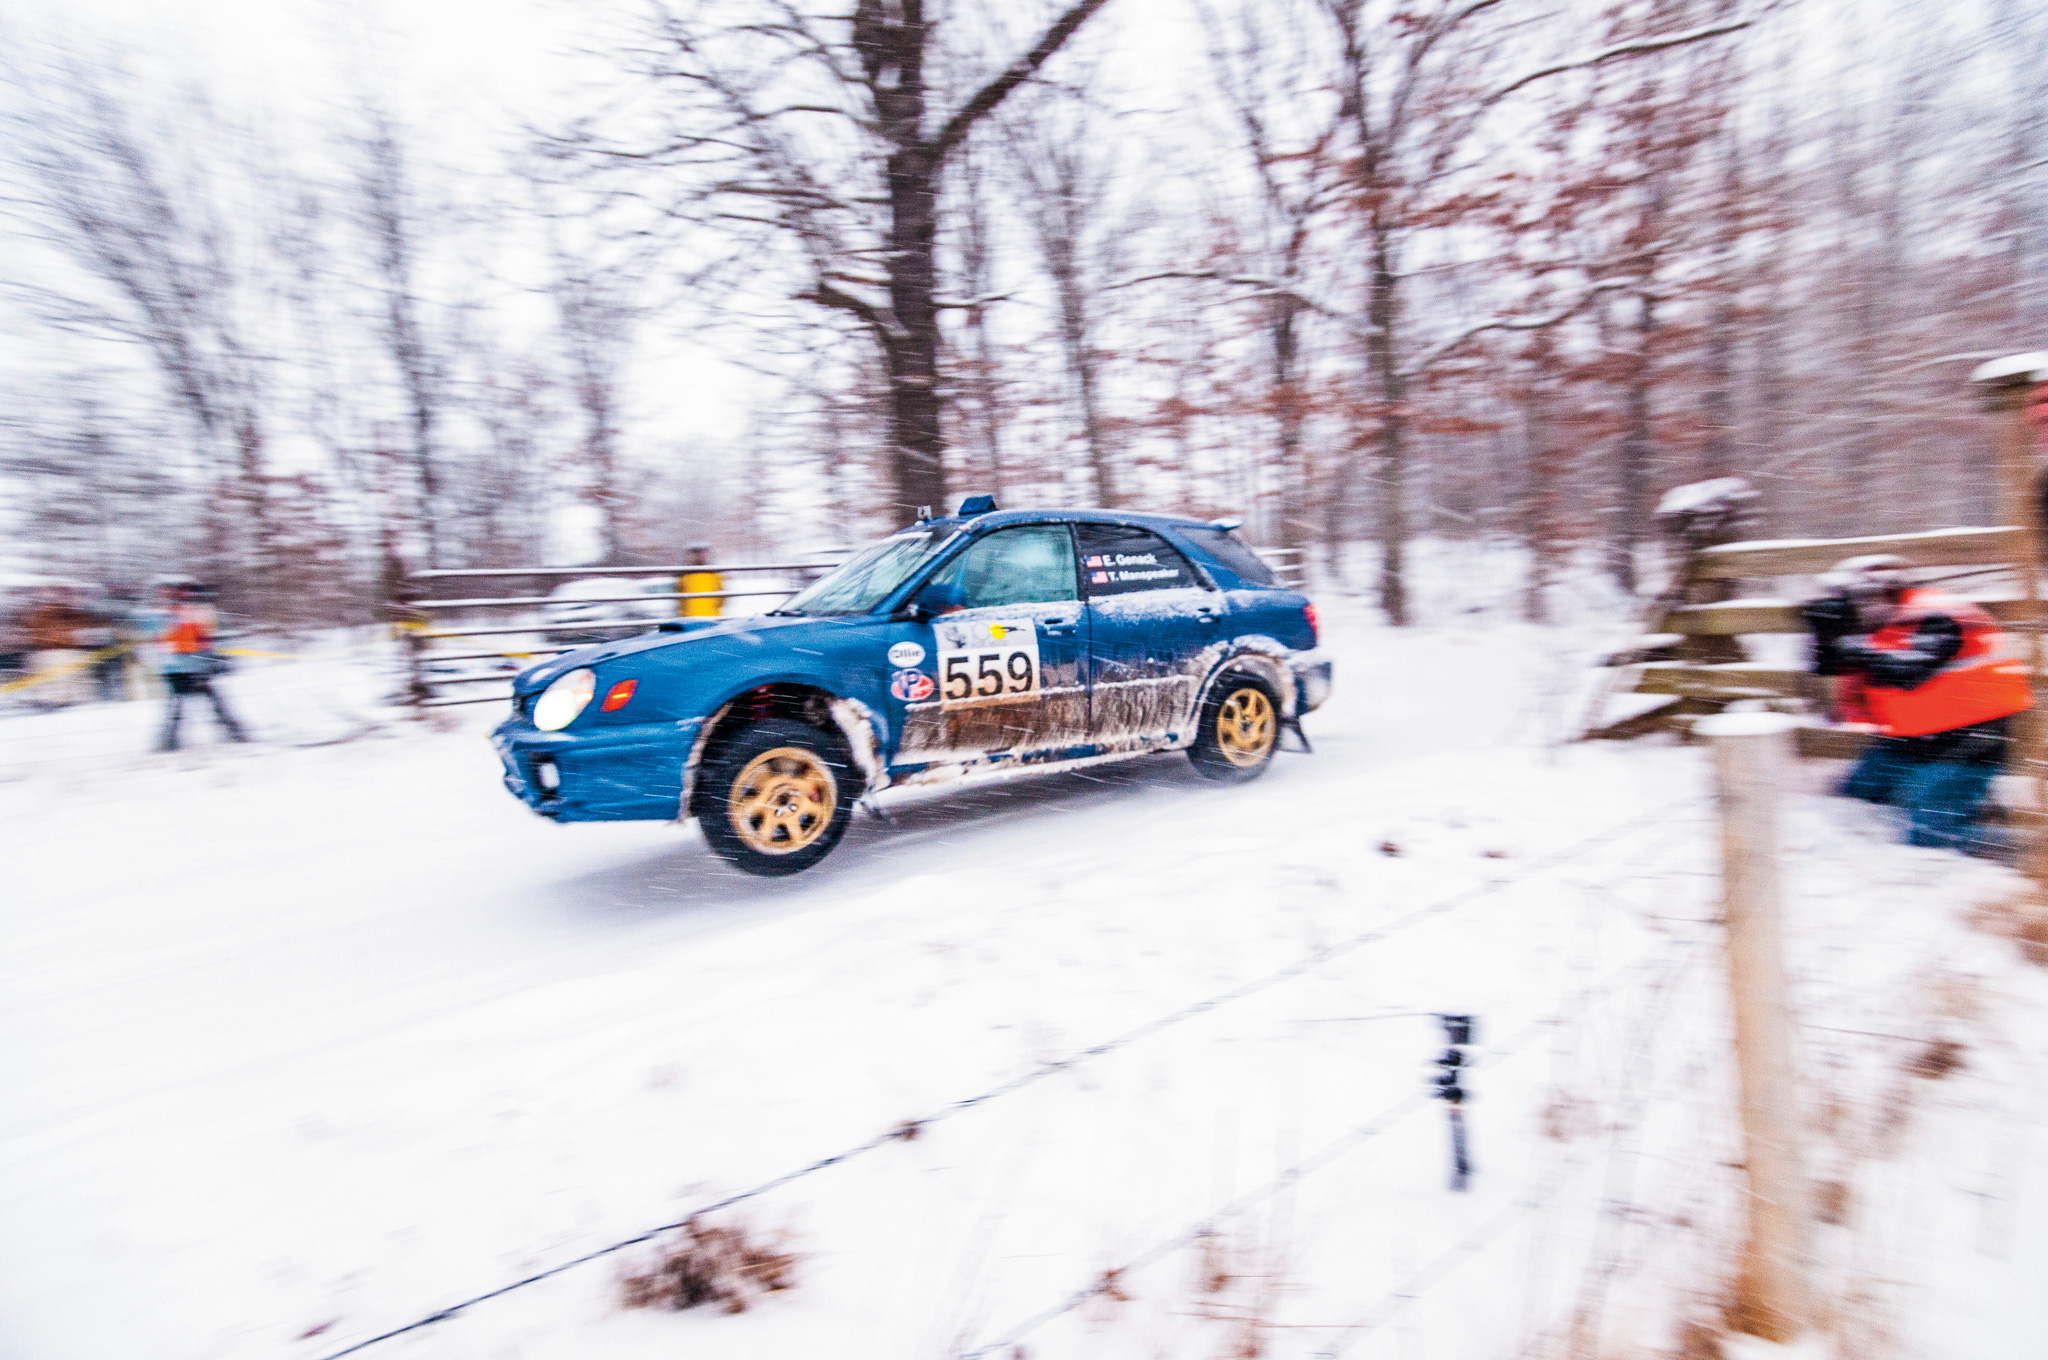 Seeing rally cars fly through the air is almost as awesome as driving our own car on Missouri's snow-covered back roads.